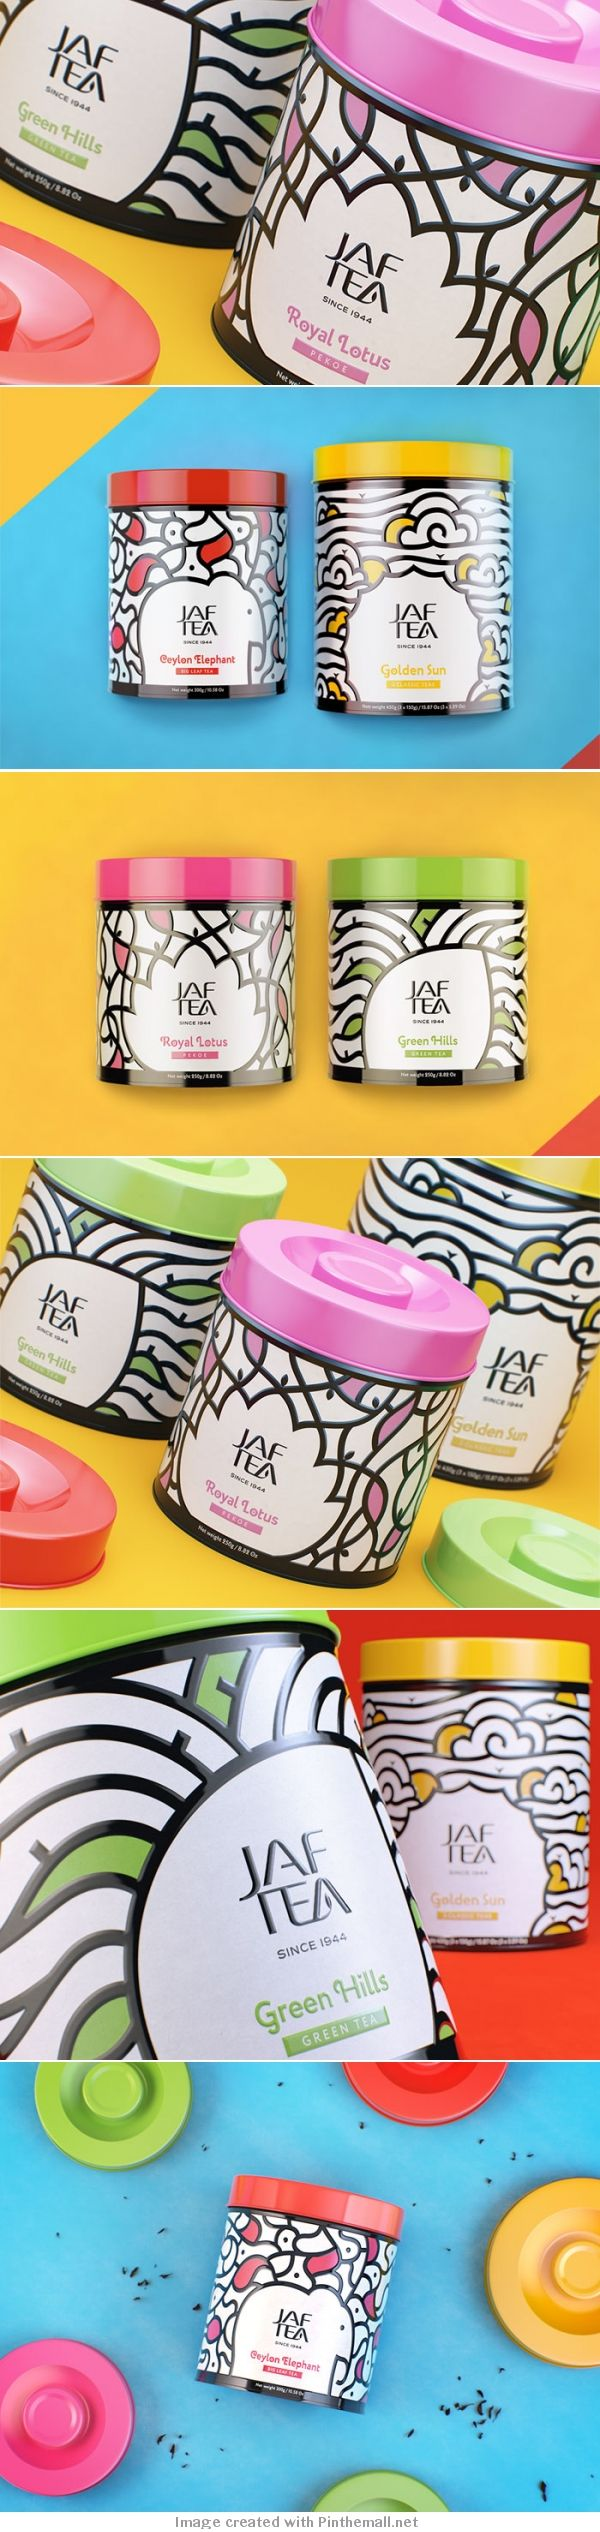 by the Russian designer, Katerina Teterkina for JAF tea, a company with 70 years of experience